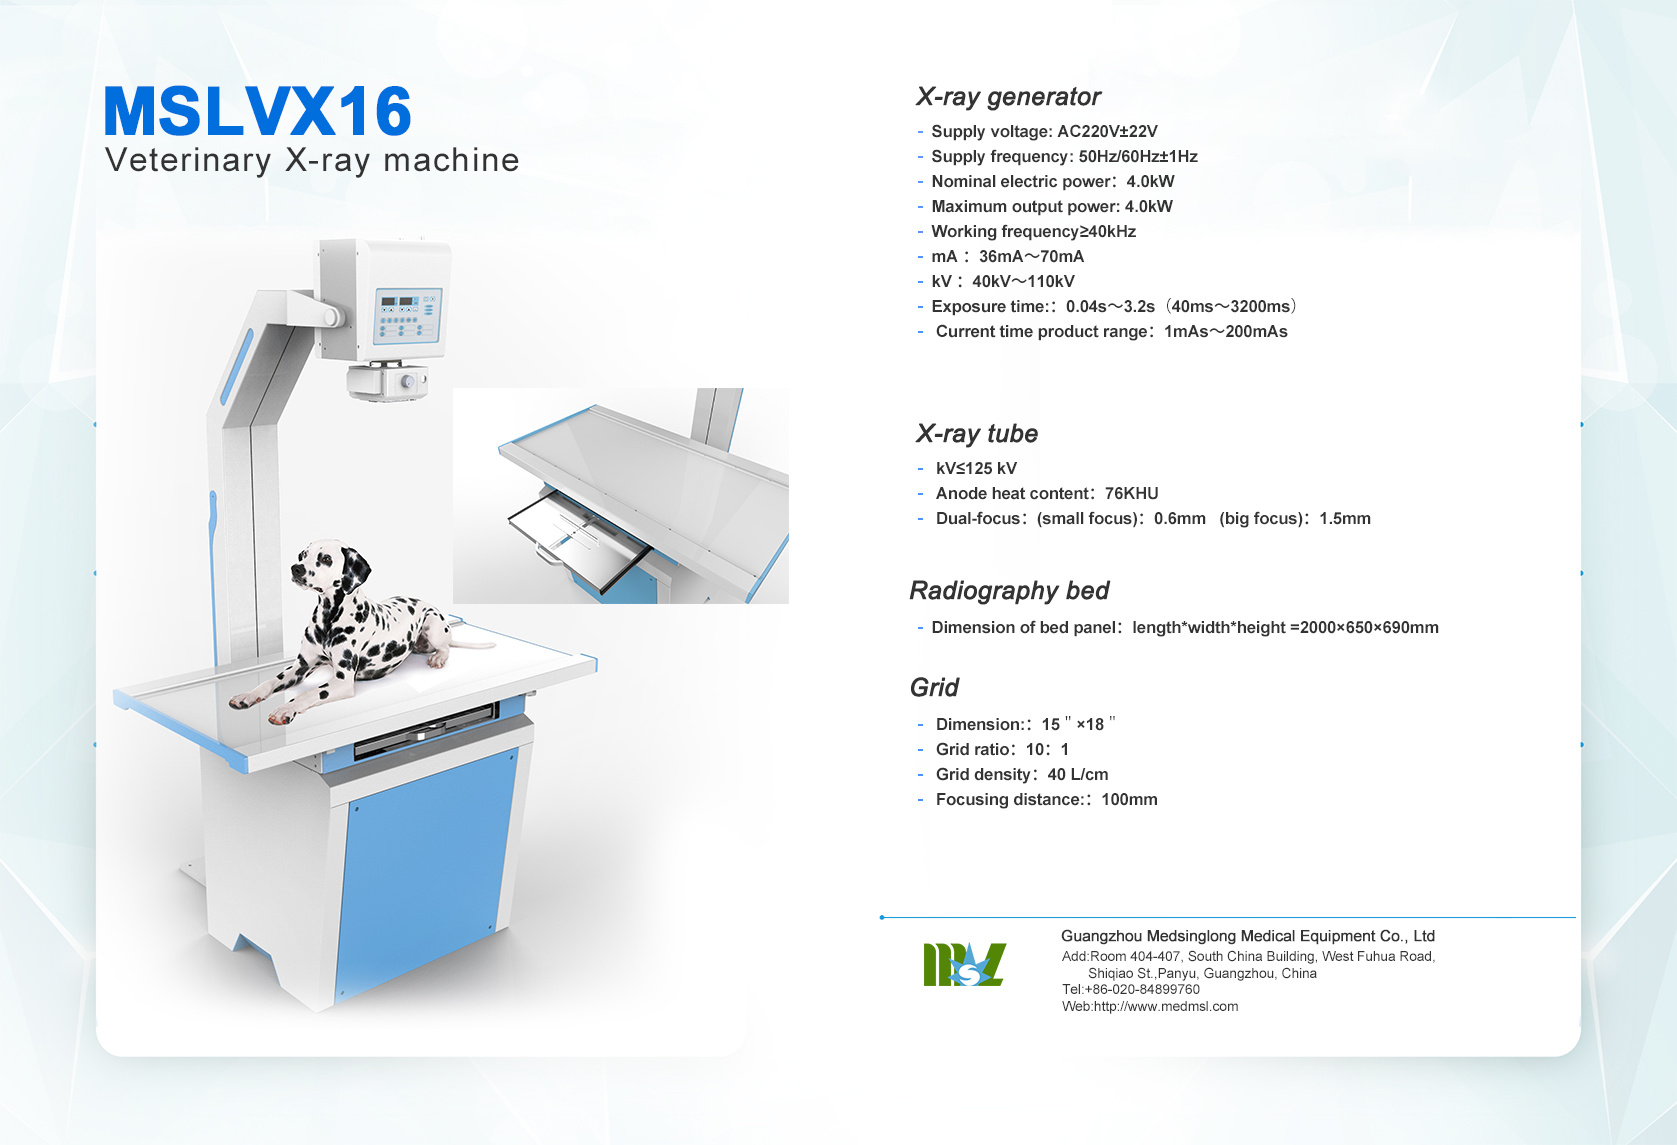 hight resolution of professional top china manufacturer radiology equipment 4 0kw 70ma veterinary x ray equipment mslvx16